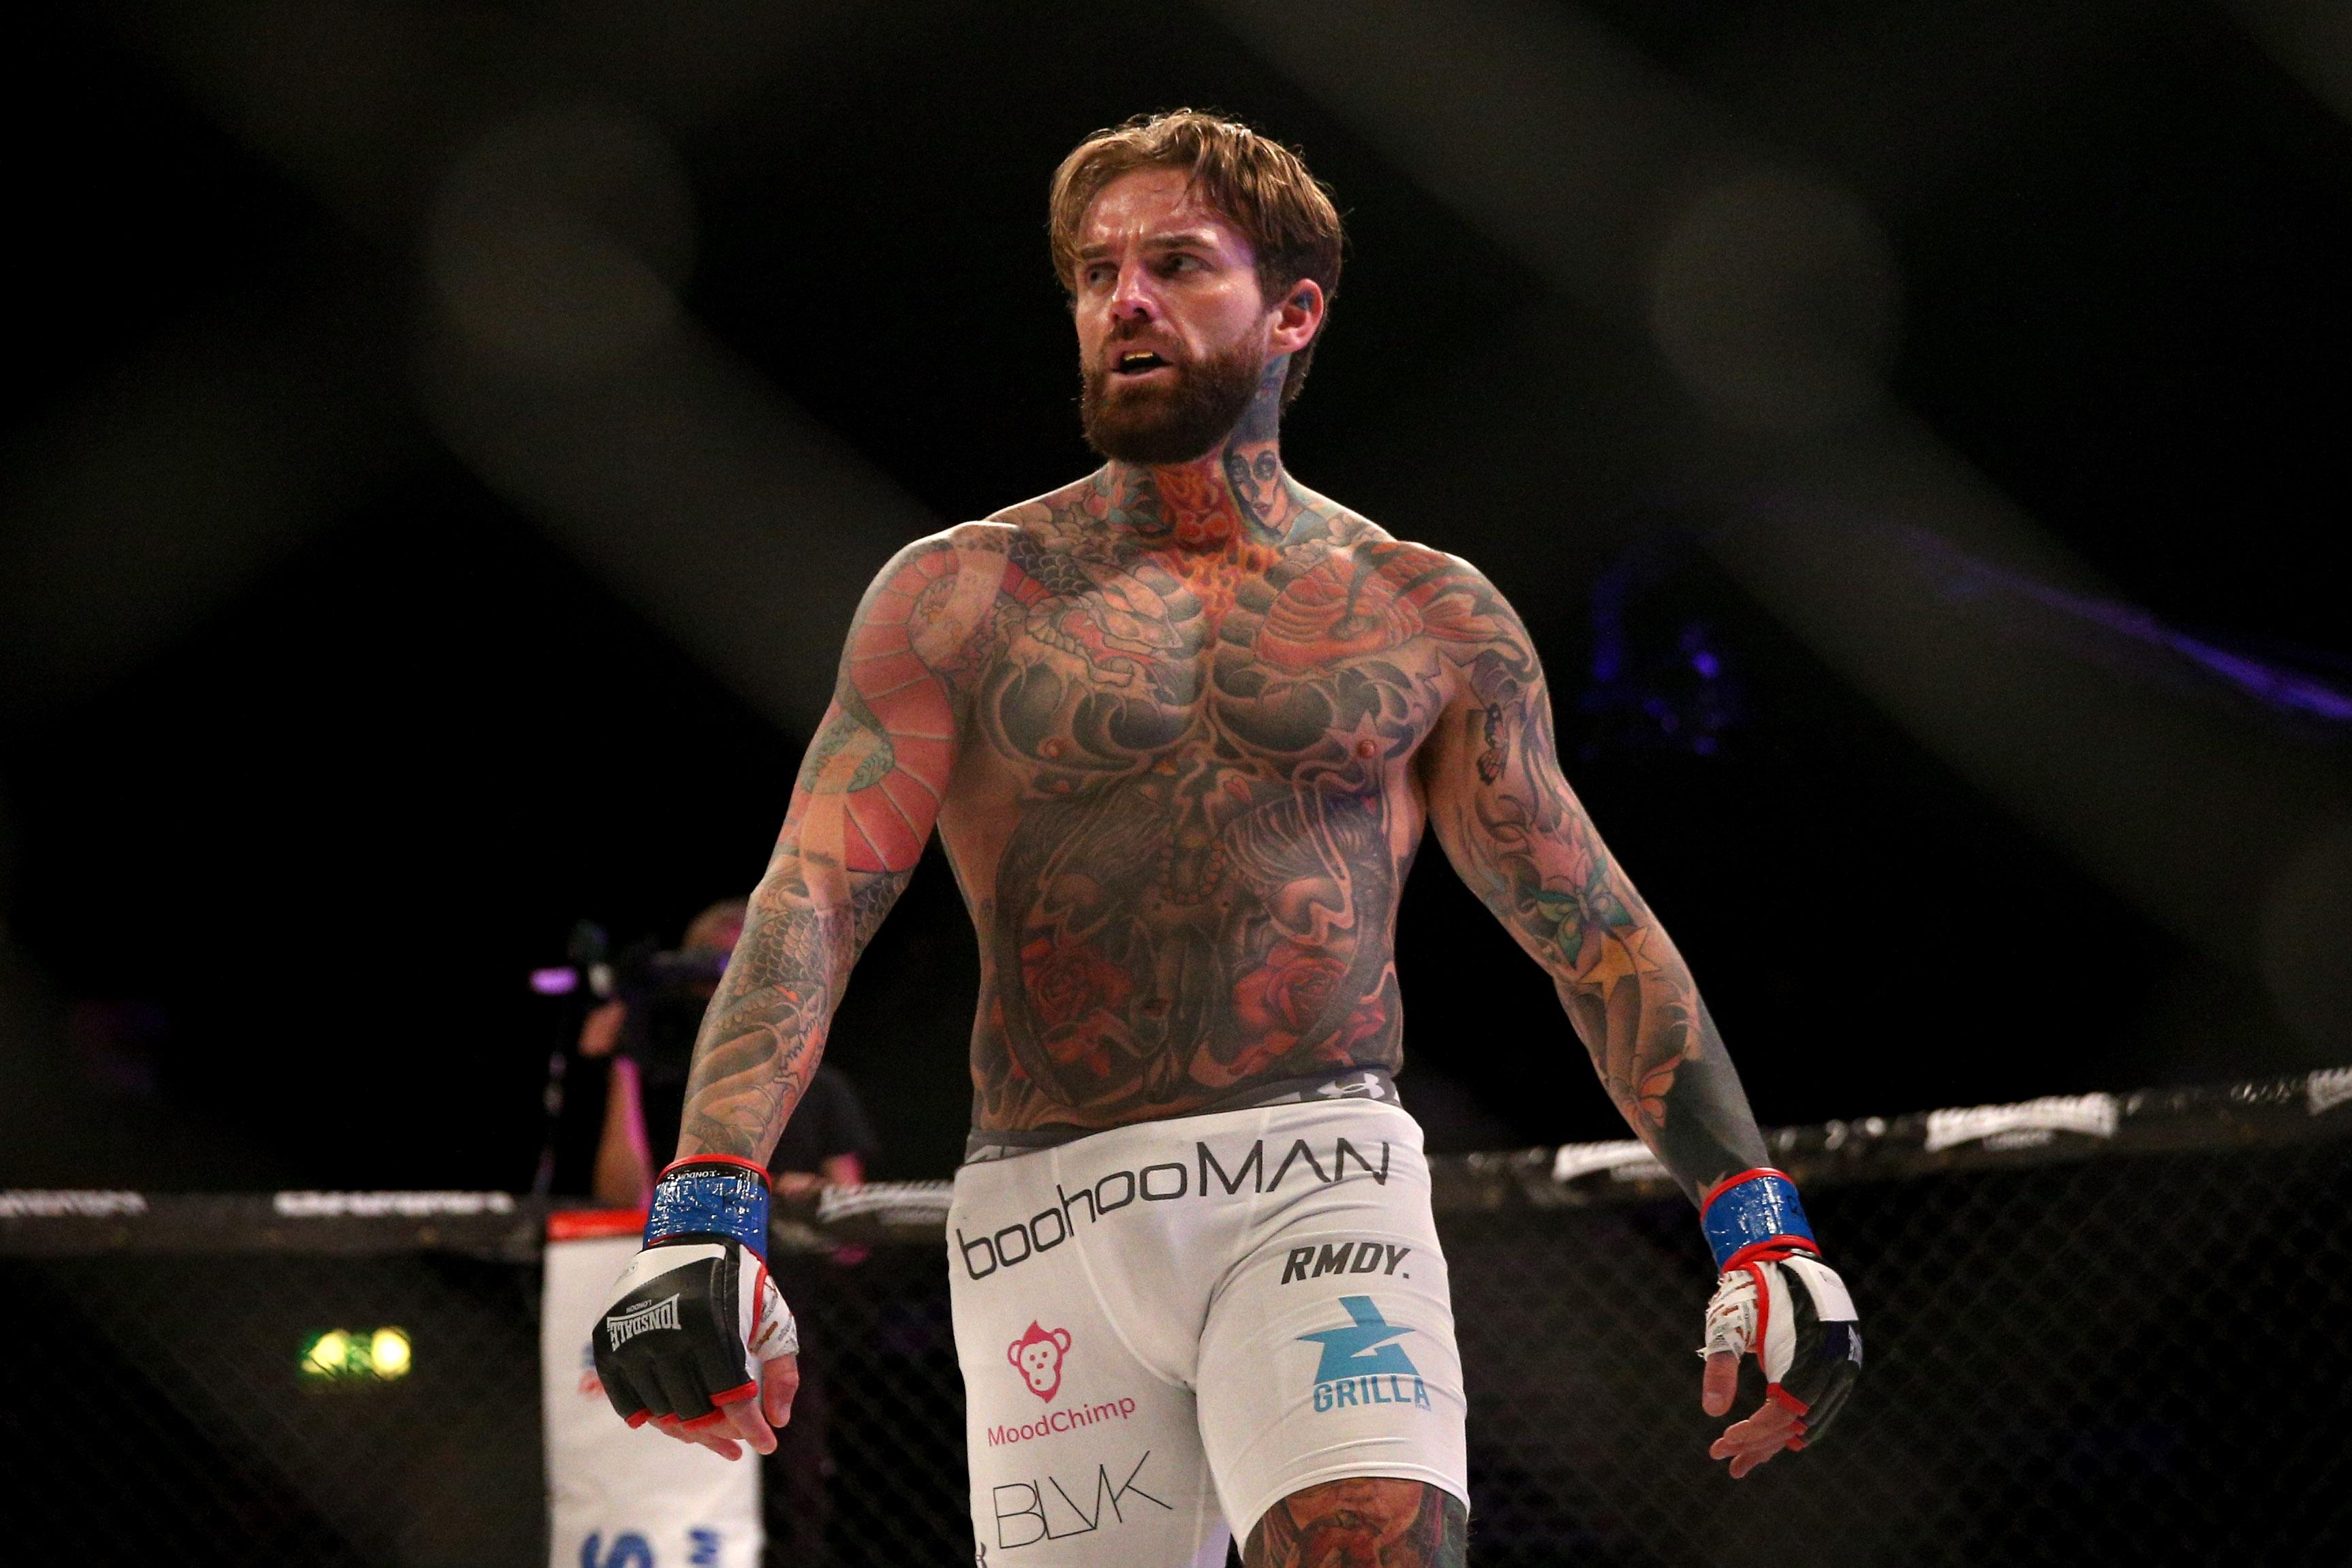 Aaron Chalmers has won all three of his pro MMA fights by knockout